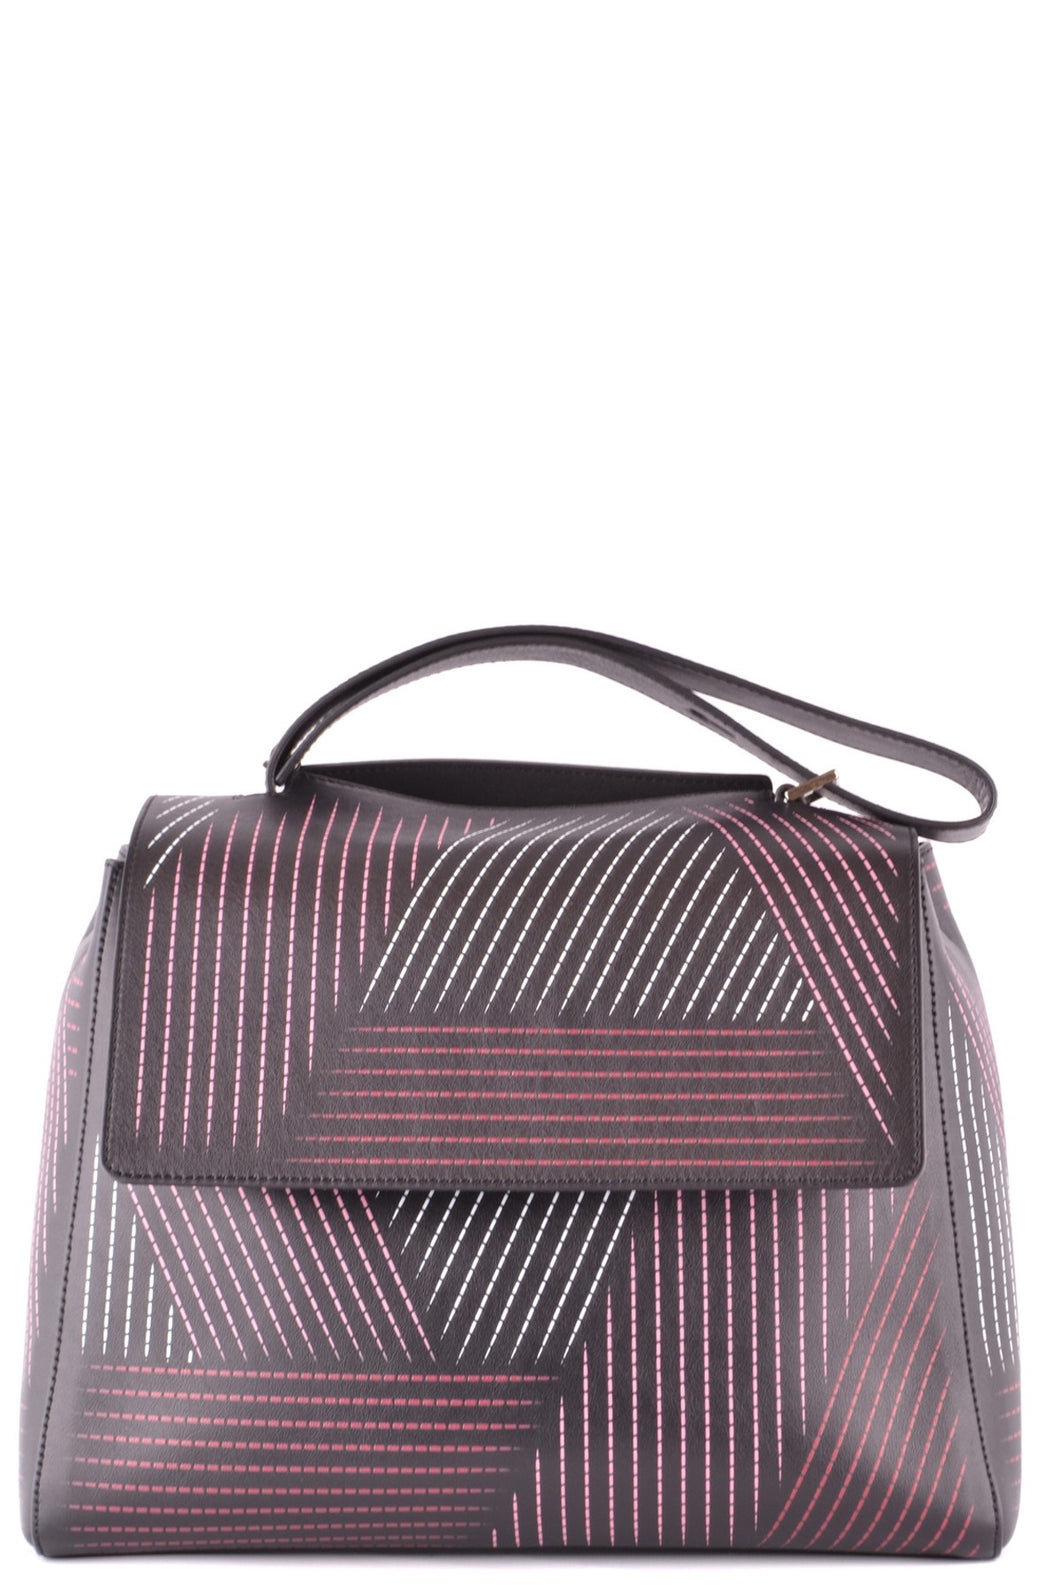 Orciani  Women Bag - SisBrothers